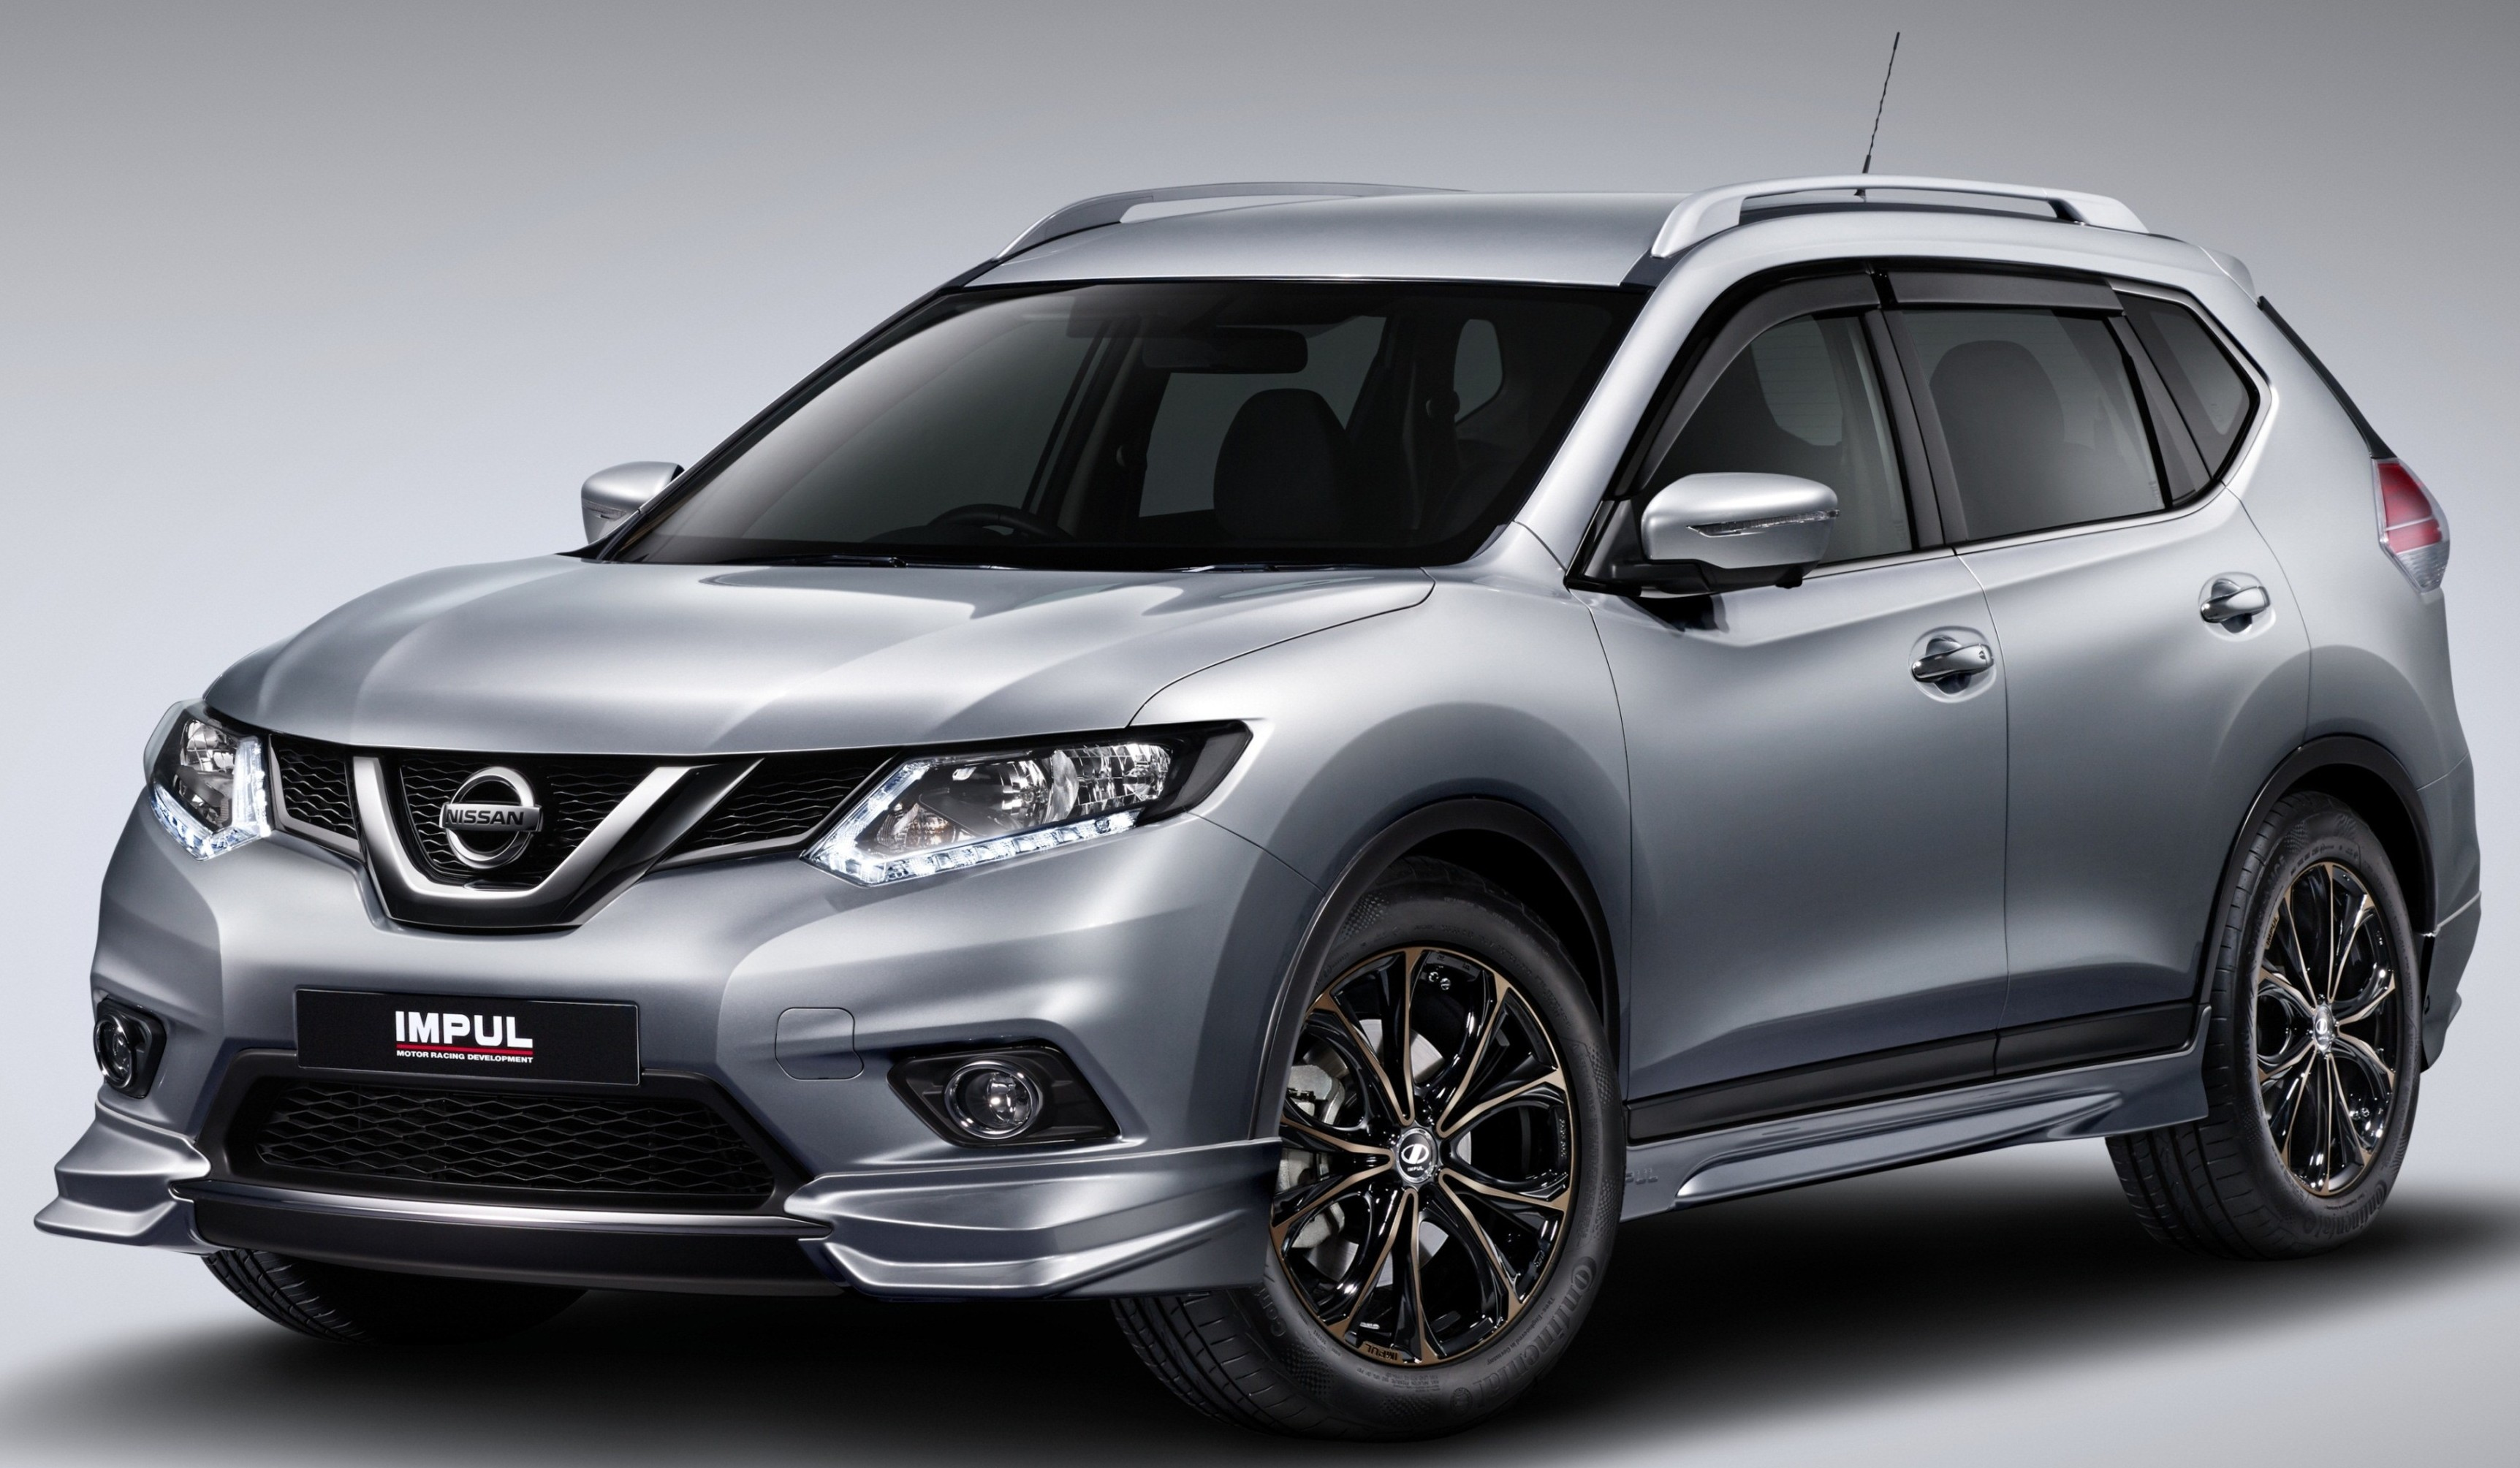 nissan x trail impul edition launched from rm150k. Black Bedroom Furniture Sets. Home Design Ideas